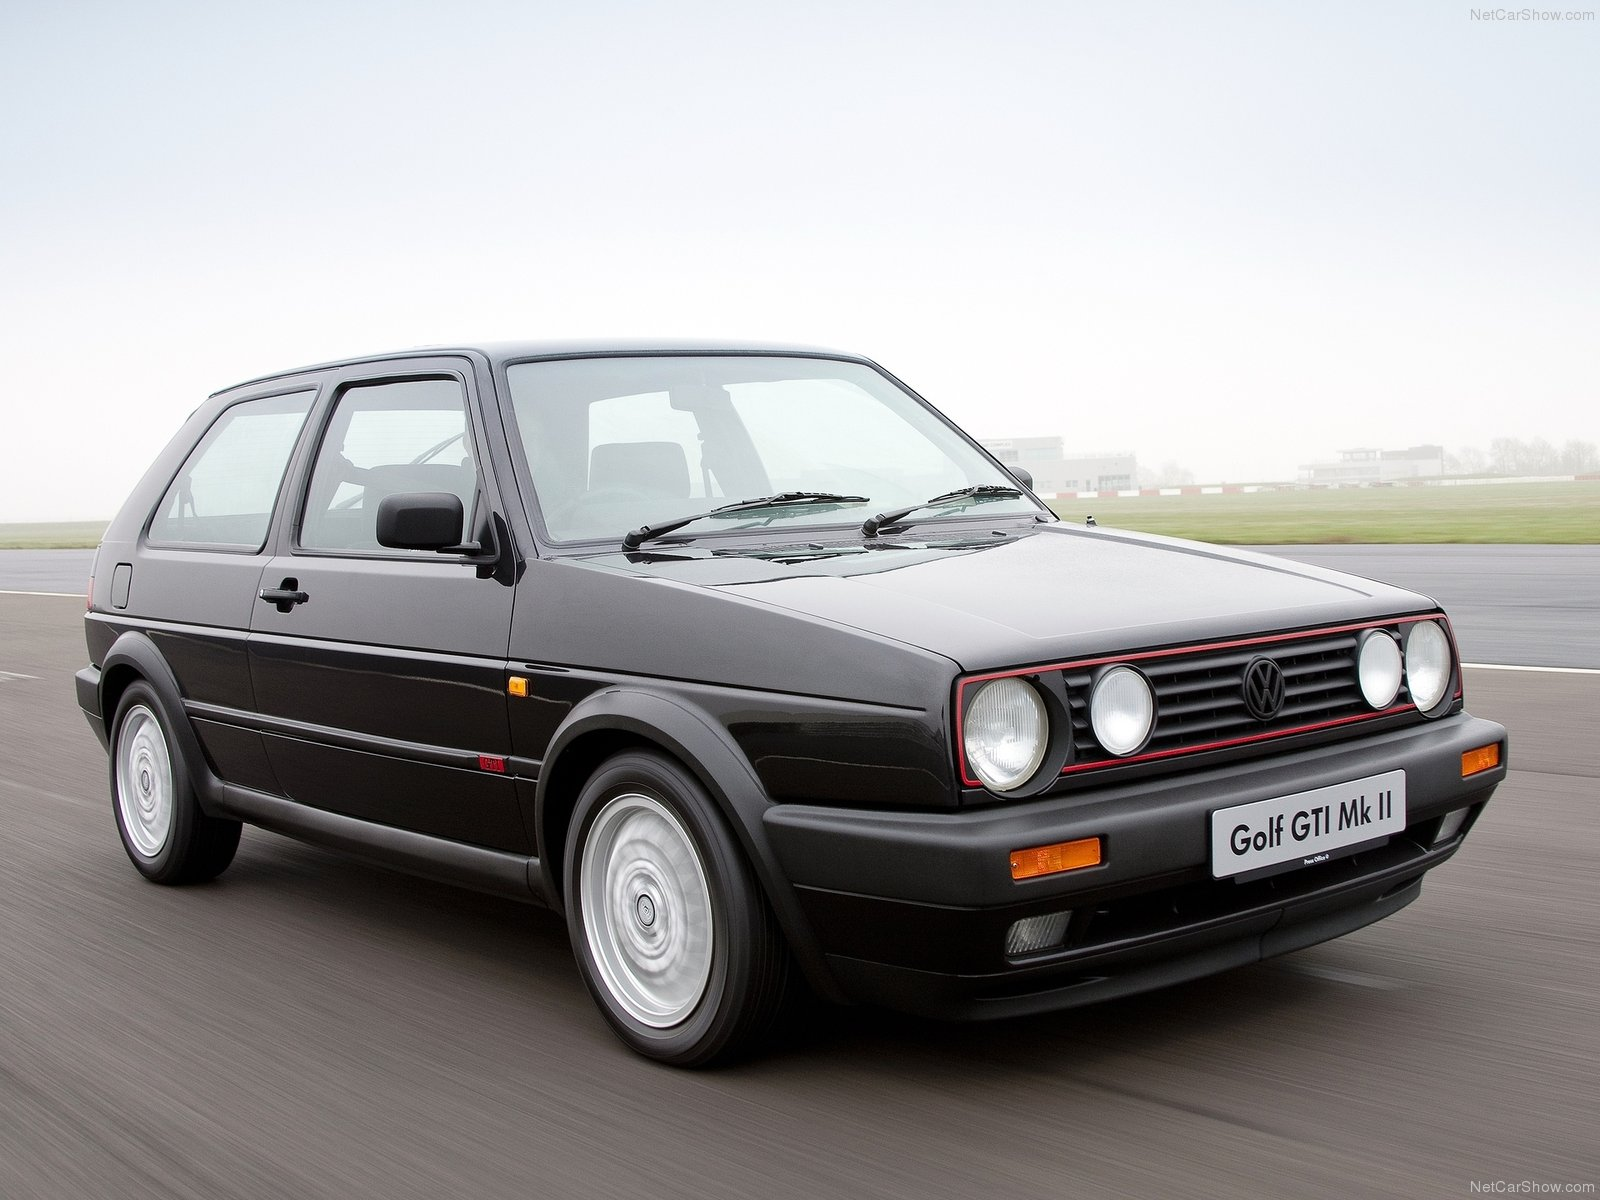 1980 Volkswagen Scirocco Pictures C14365 together with Ch13 furthermore Golf 2 Gti 390 moreover 2001 Volkswagen Golf Pictures C5889 besides Viewtopic. on 1985 vw golf gti